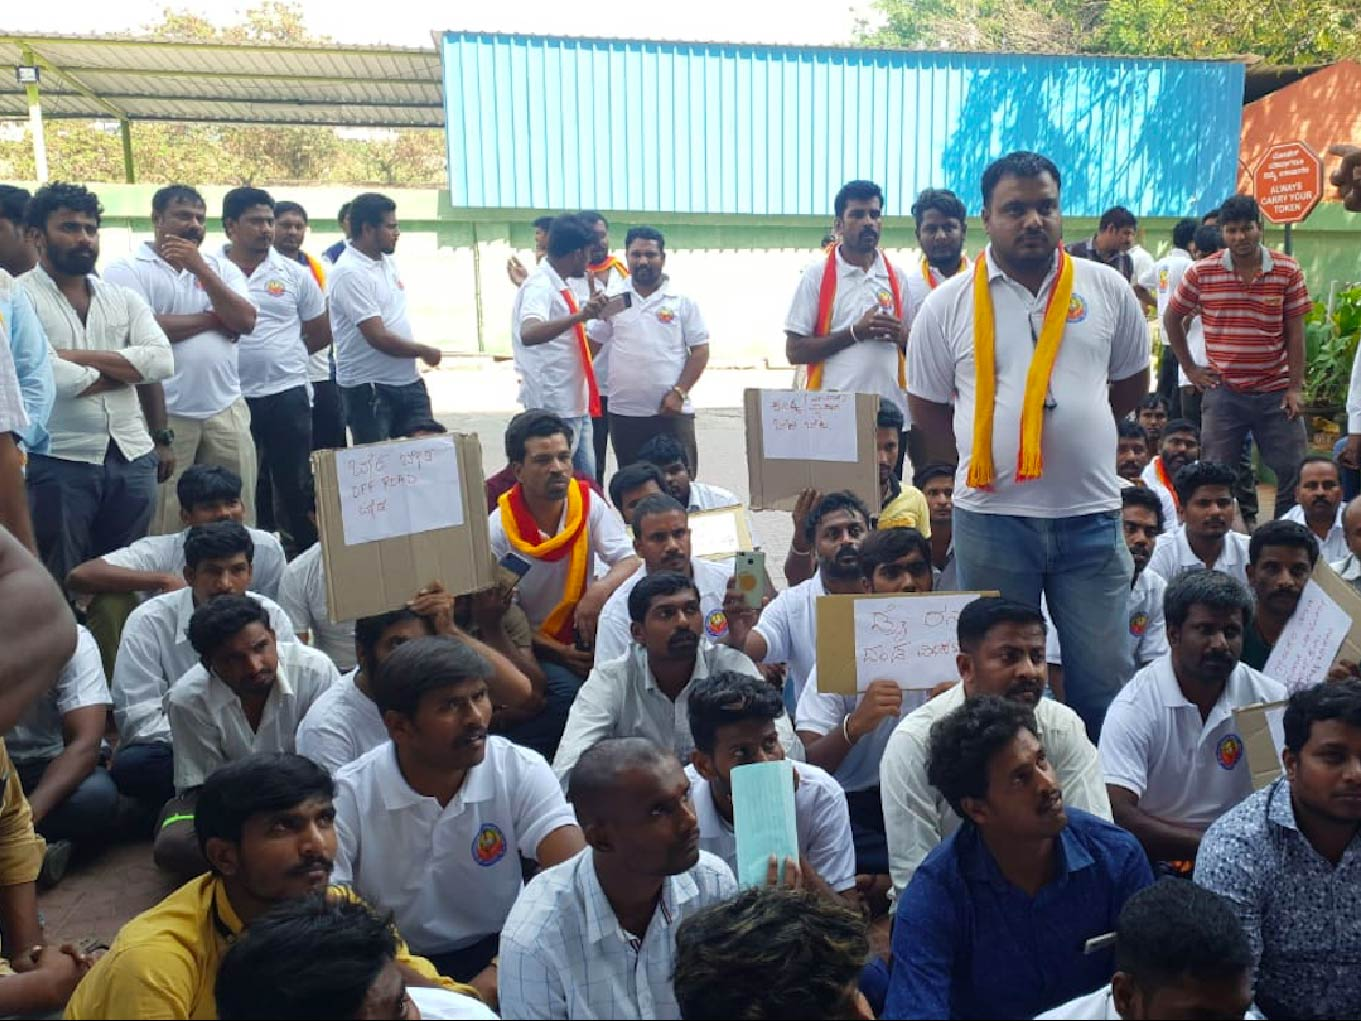 Breaking: Cab Drivers Stage Protest Outside Ola Office In Bengaluru